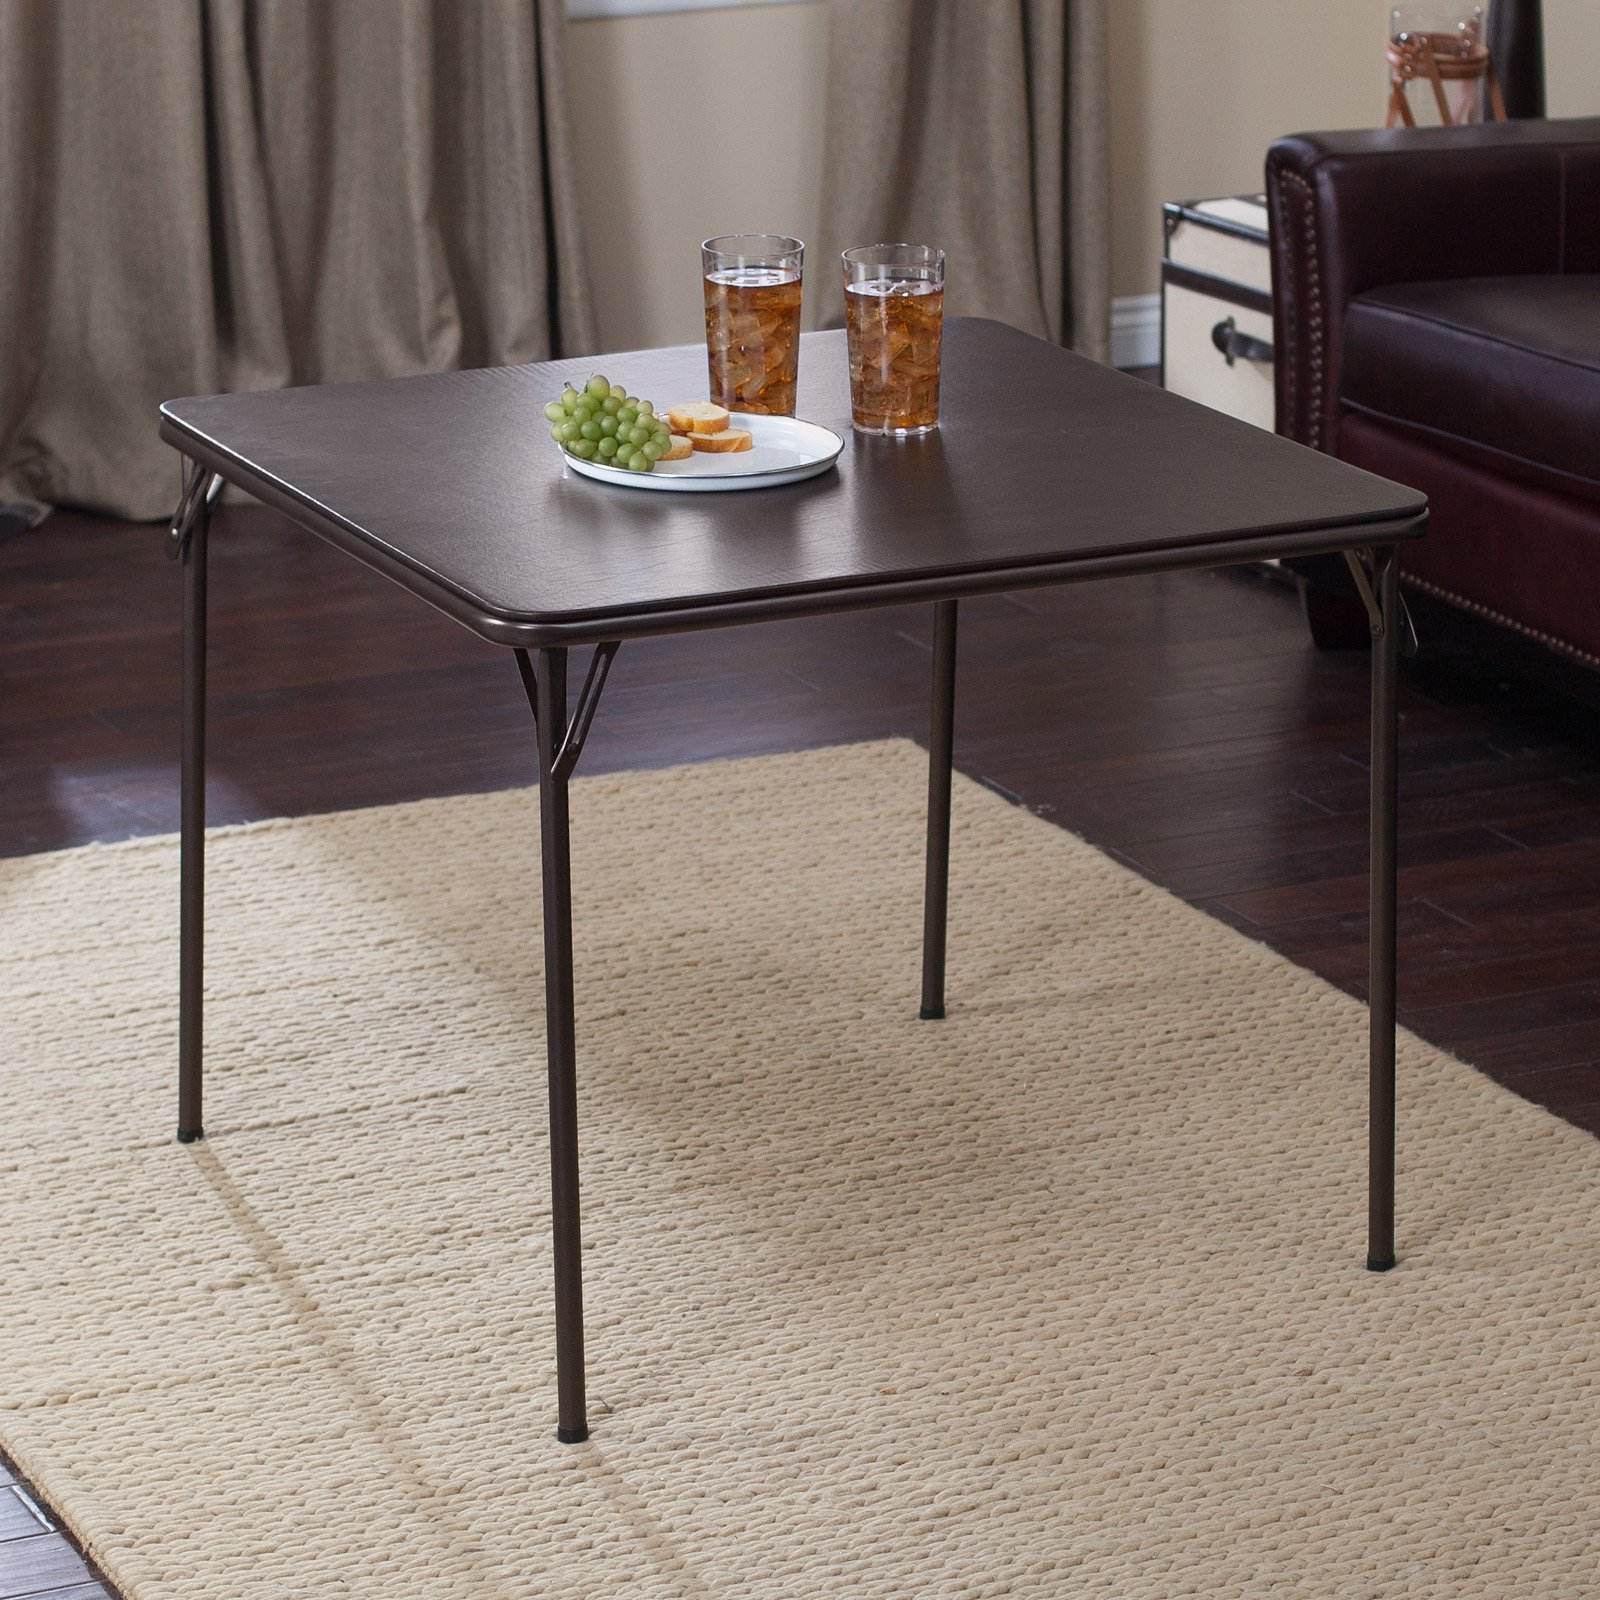 "Deep Brown Vinyl and steel 34"" x 34"" Square folding table -1pk"